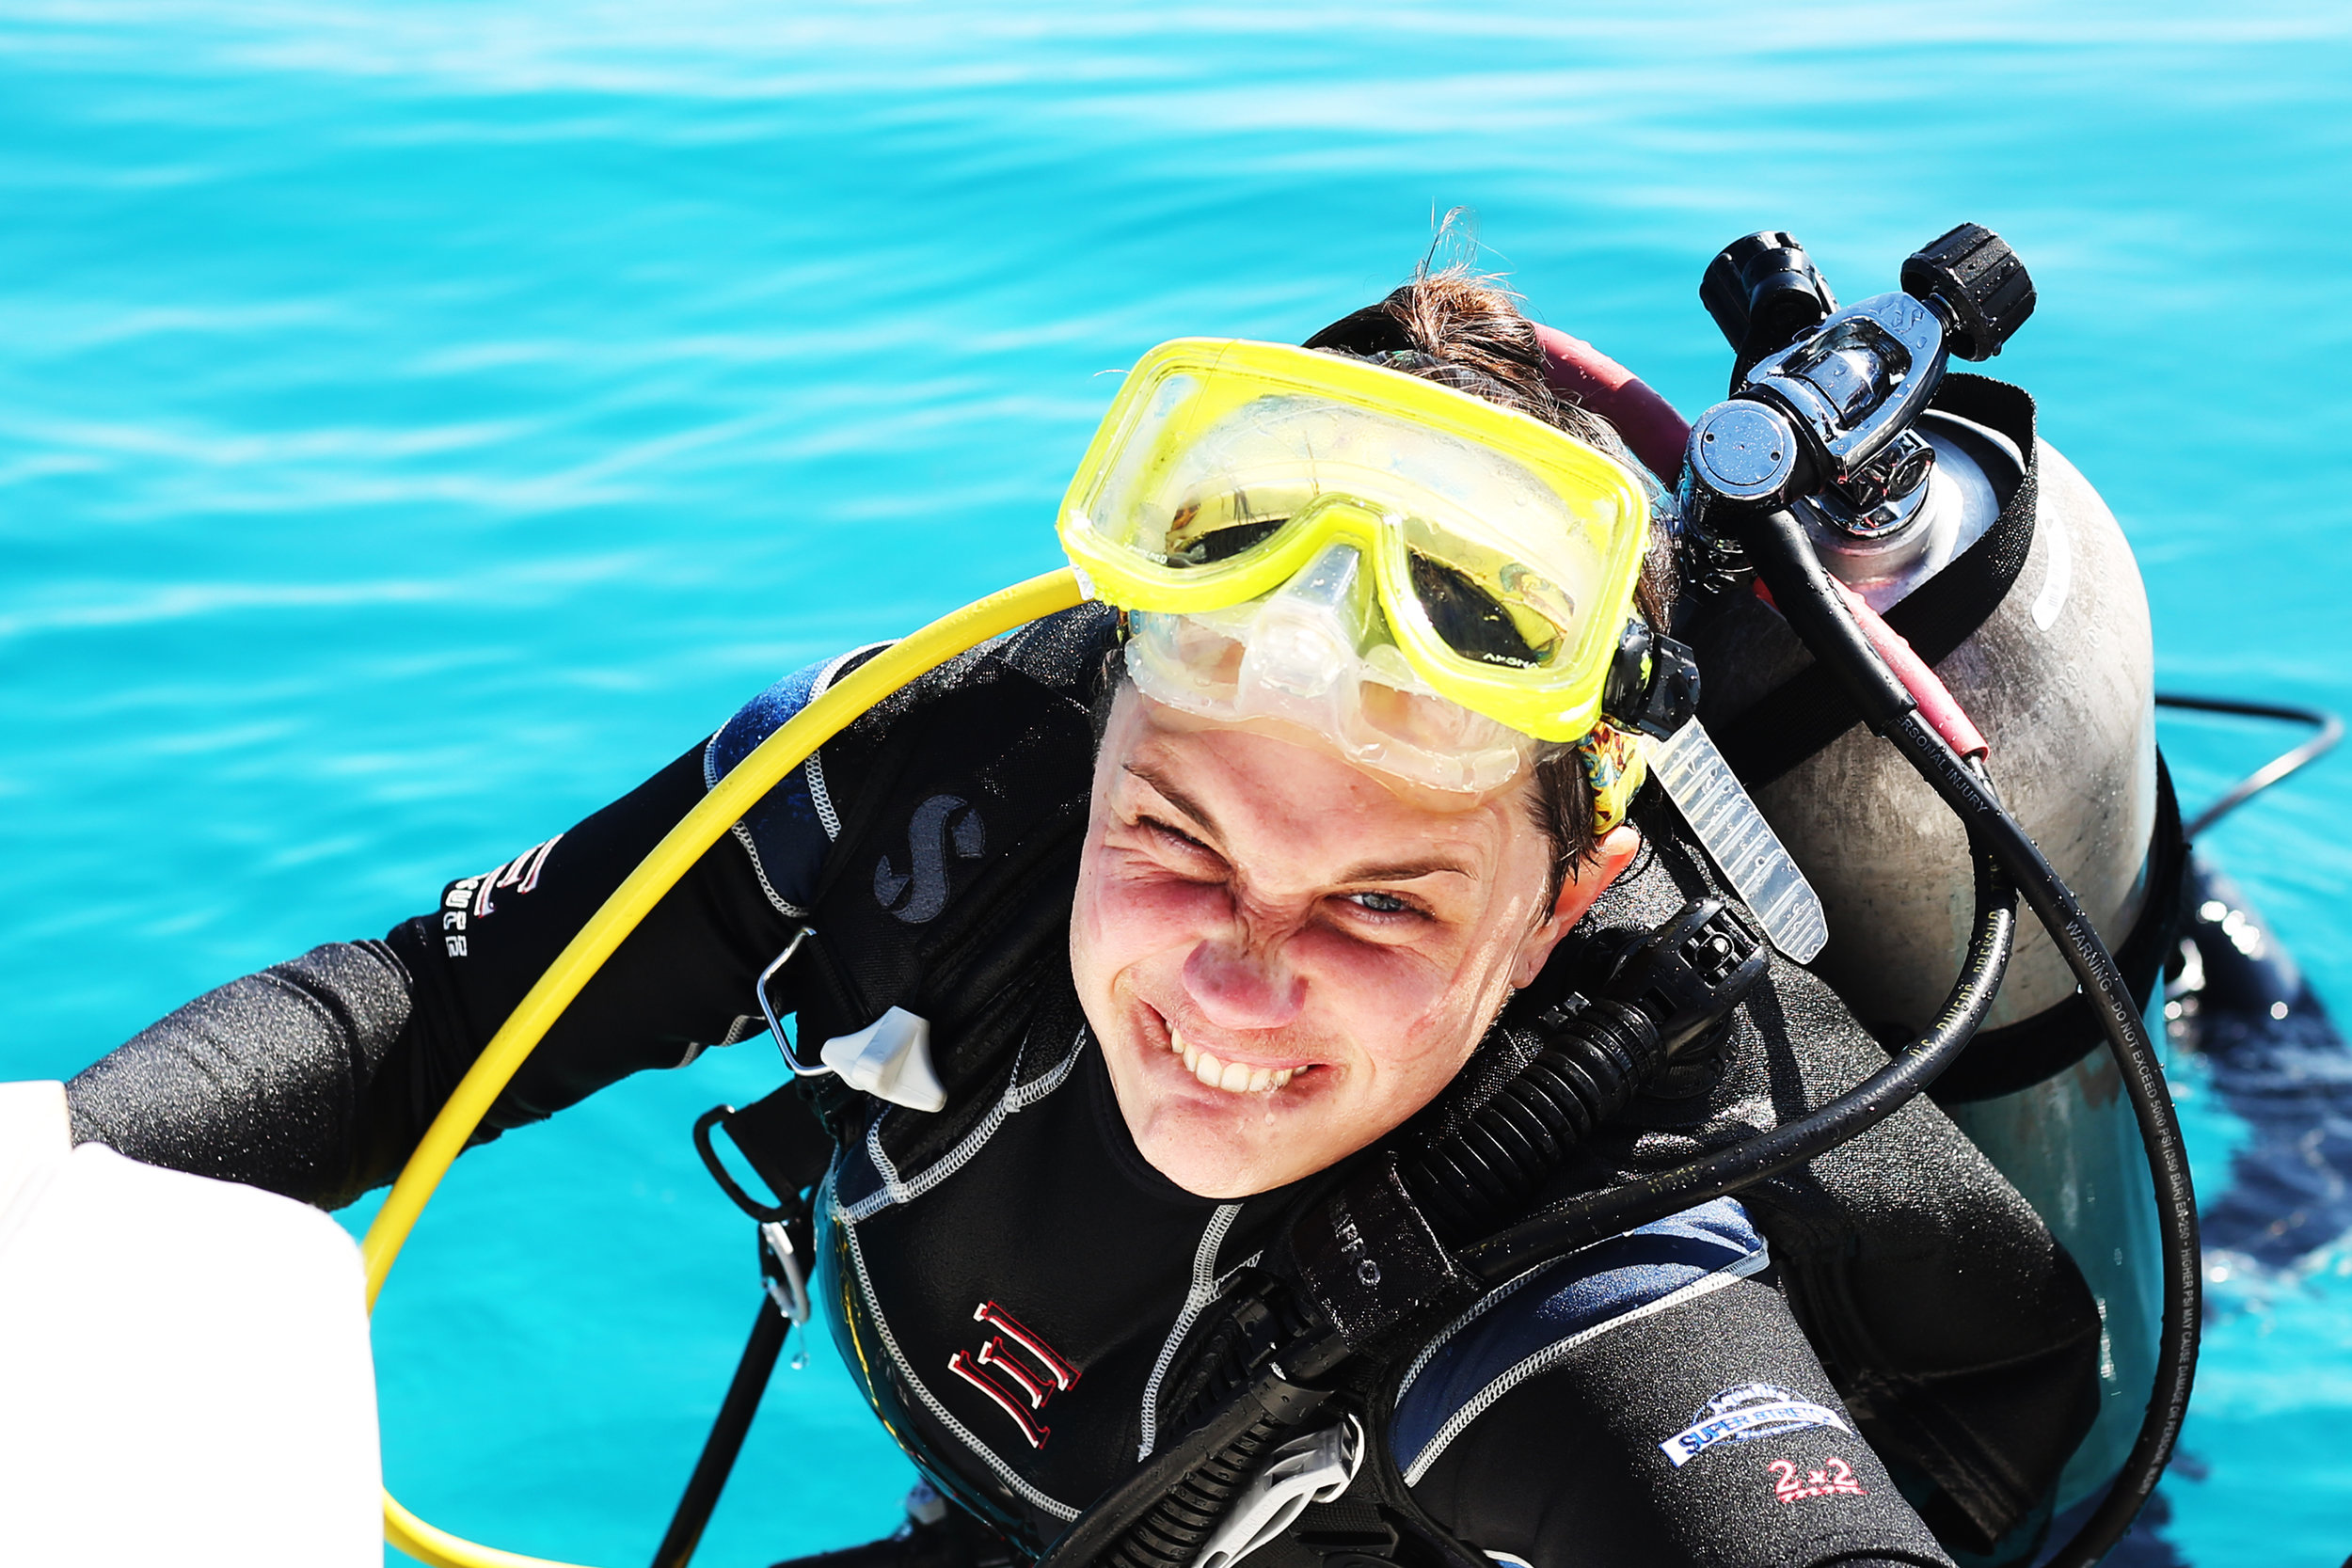 Kate Gould clambers out of the water after an hour of collecting and tagging corals near Key Largo, Florida | February 2019